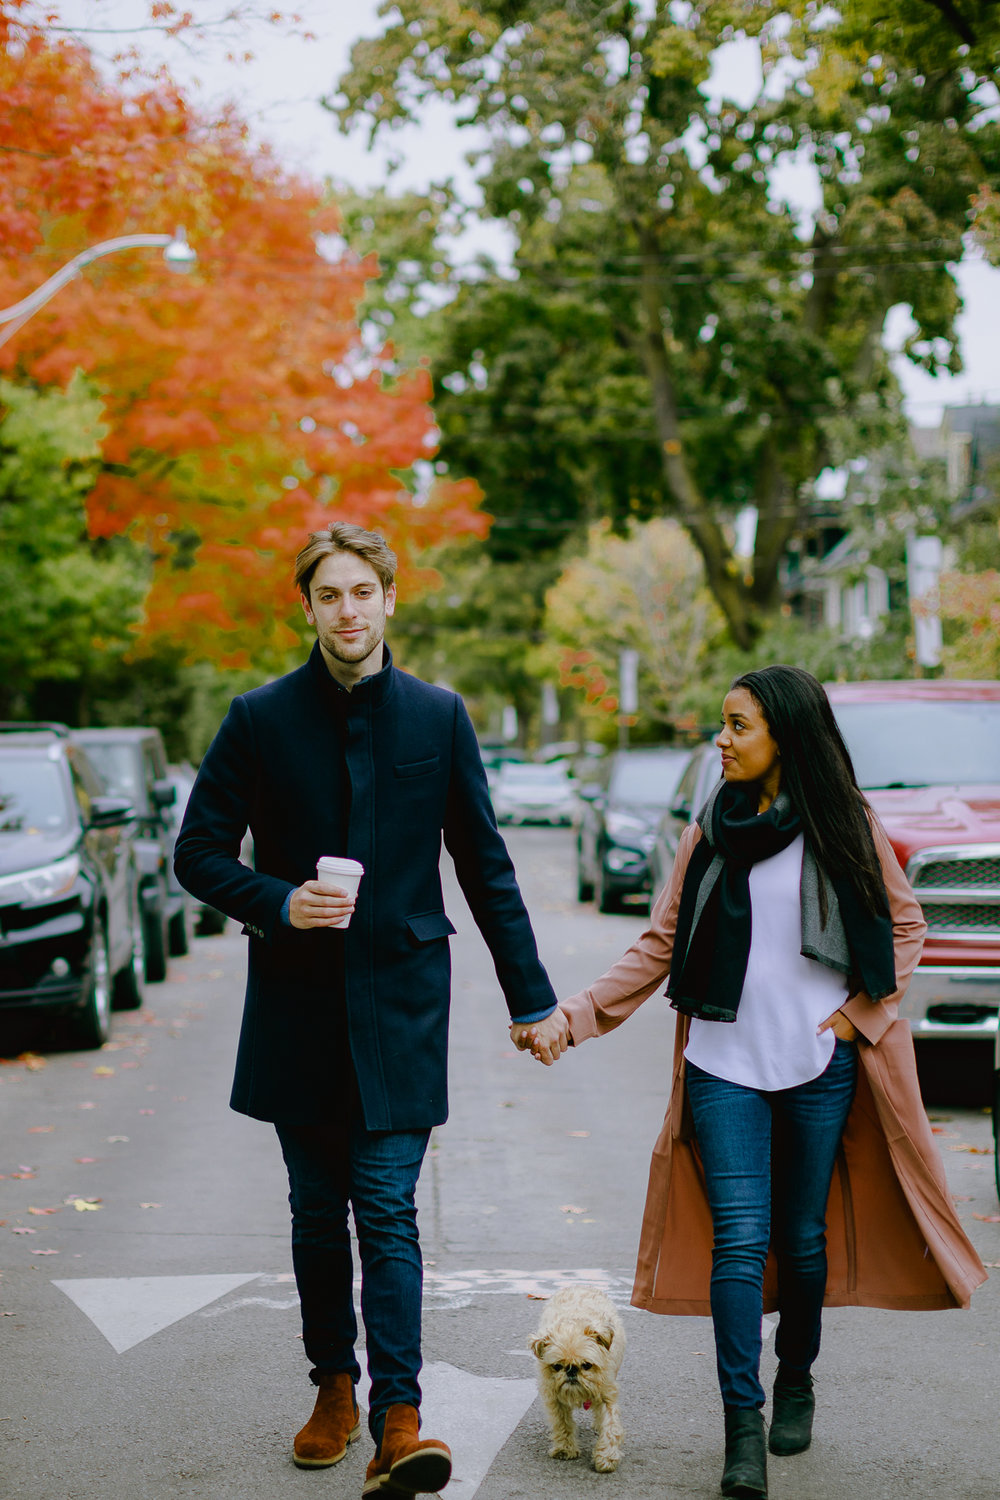 toronto-engagement-photos-leslieville-engagement 0007.jpg